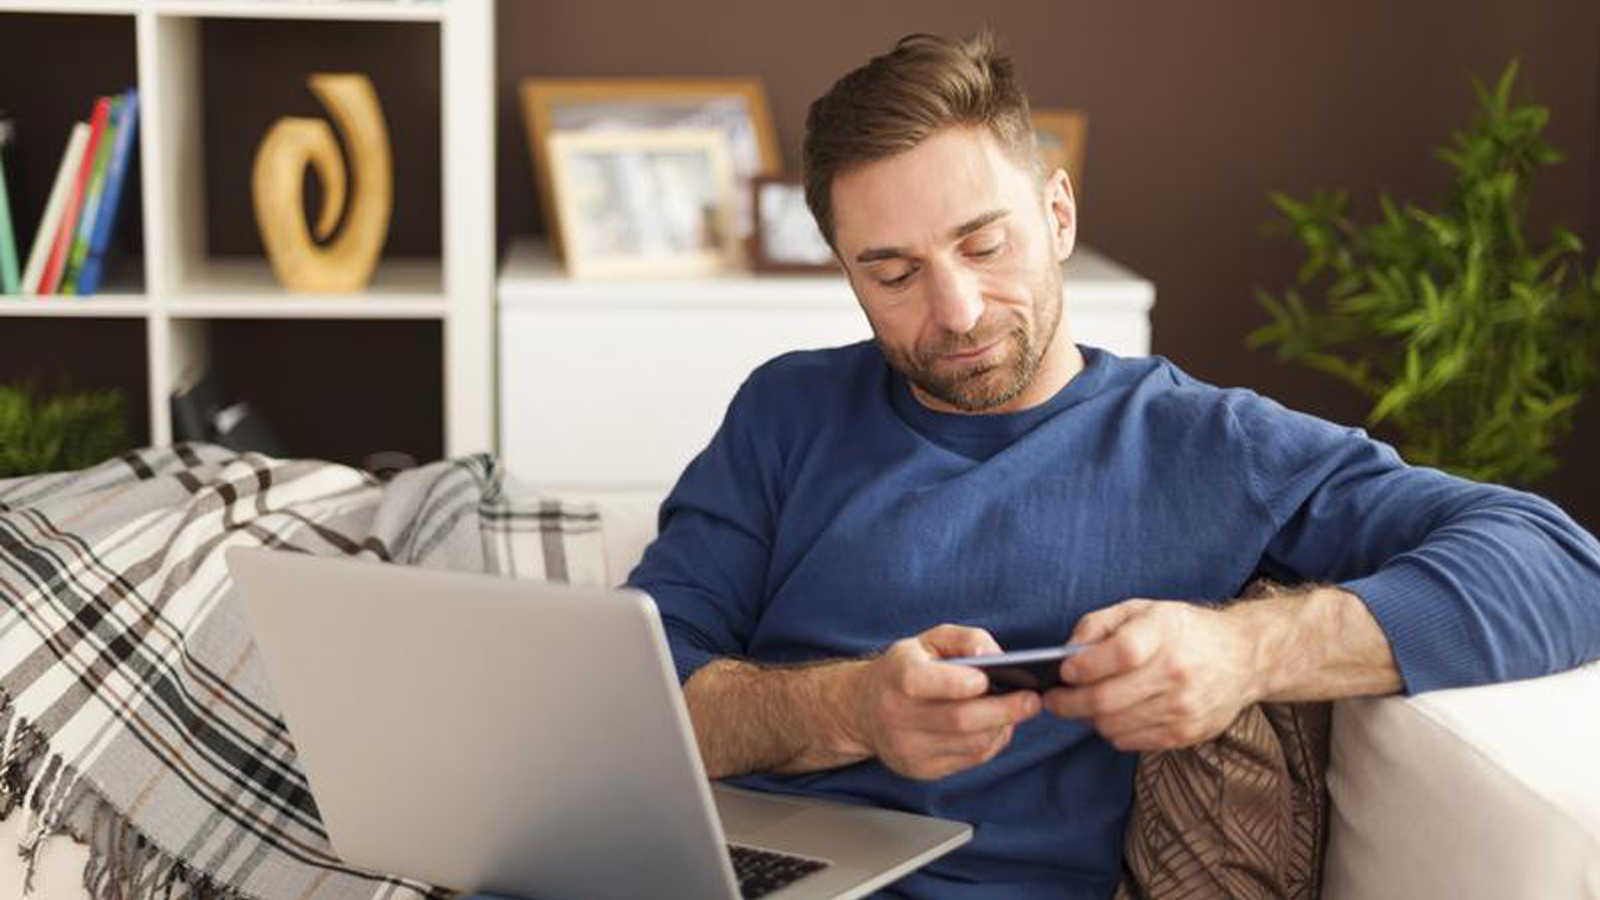 Man on a couch with a laptop using a mobile phone